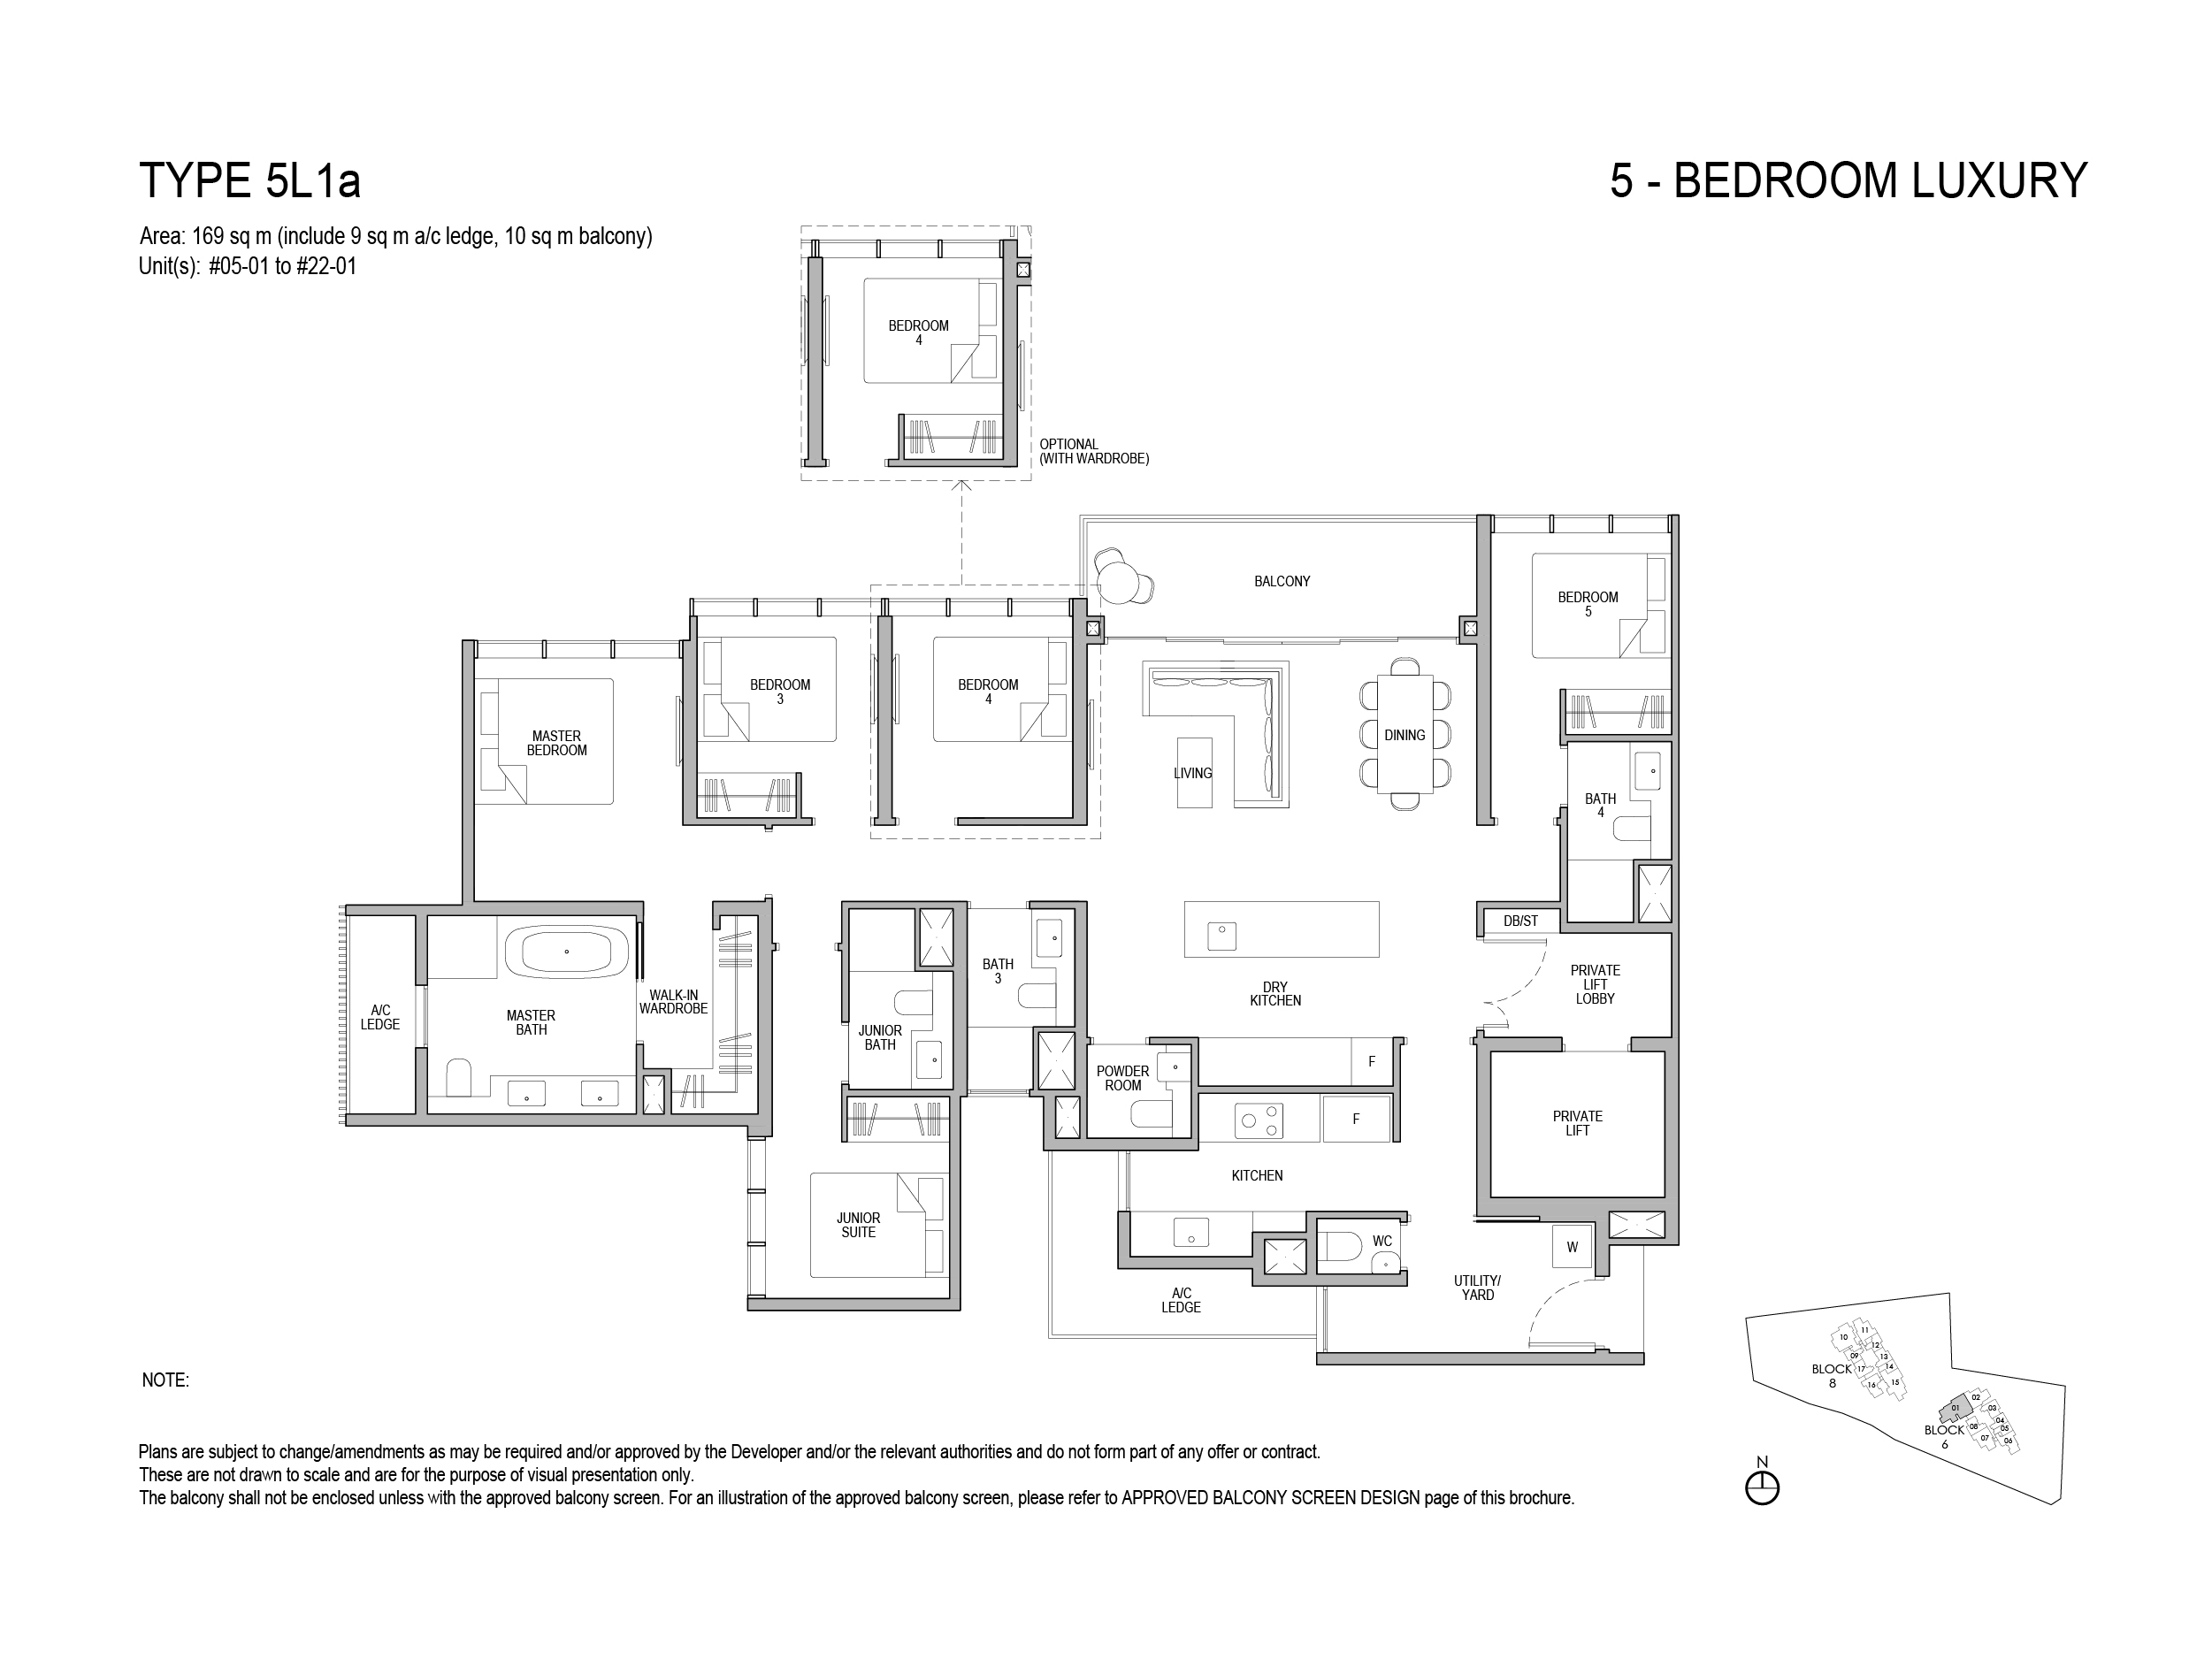 KoparAtNewton_5-Bedroom Luxury_Type5L1a.jpg